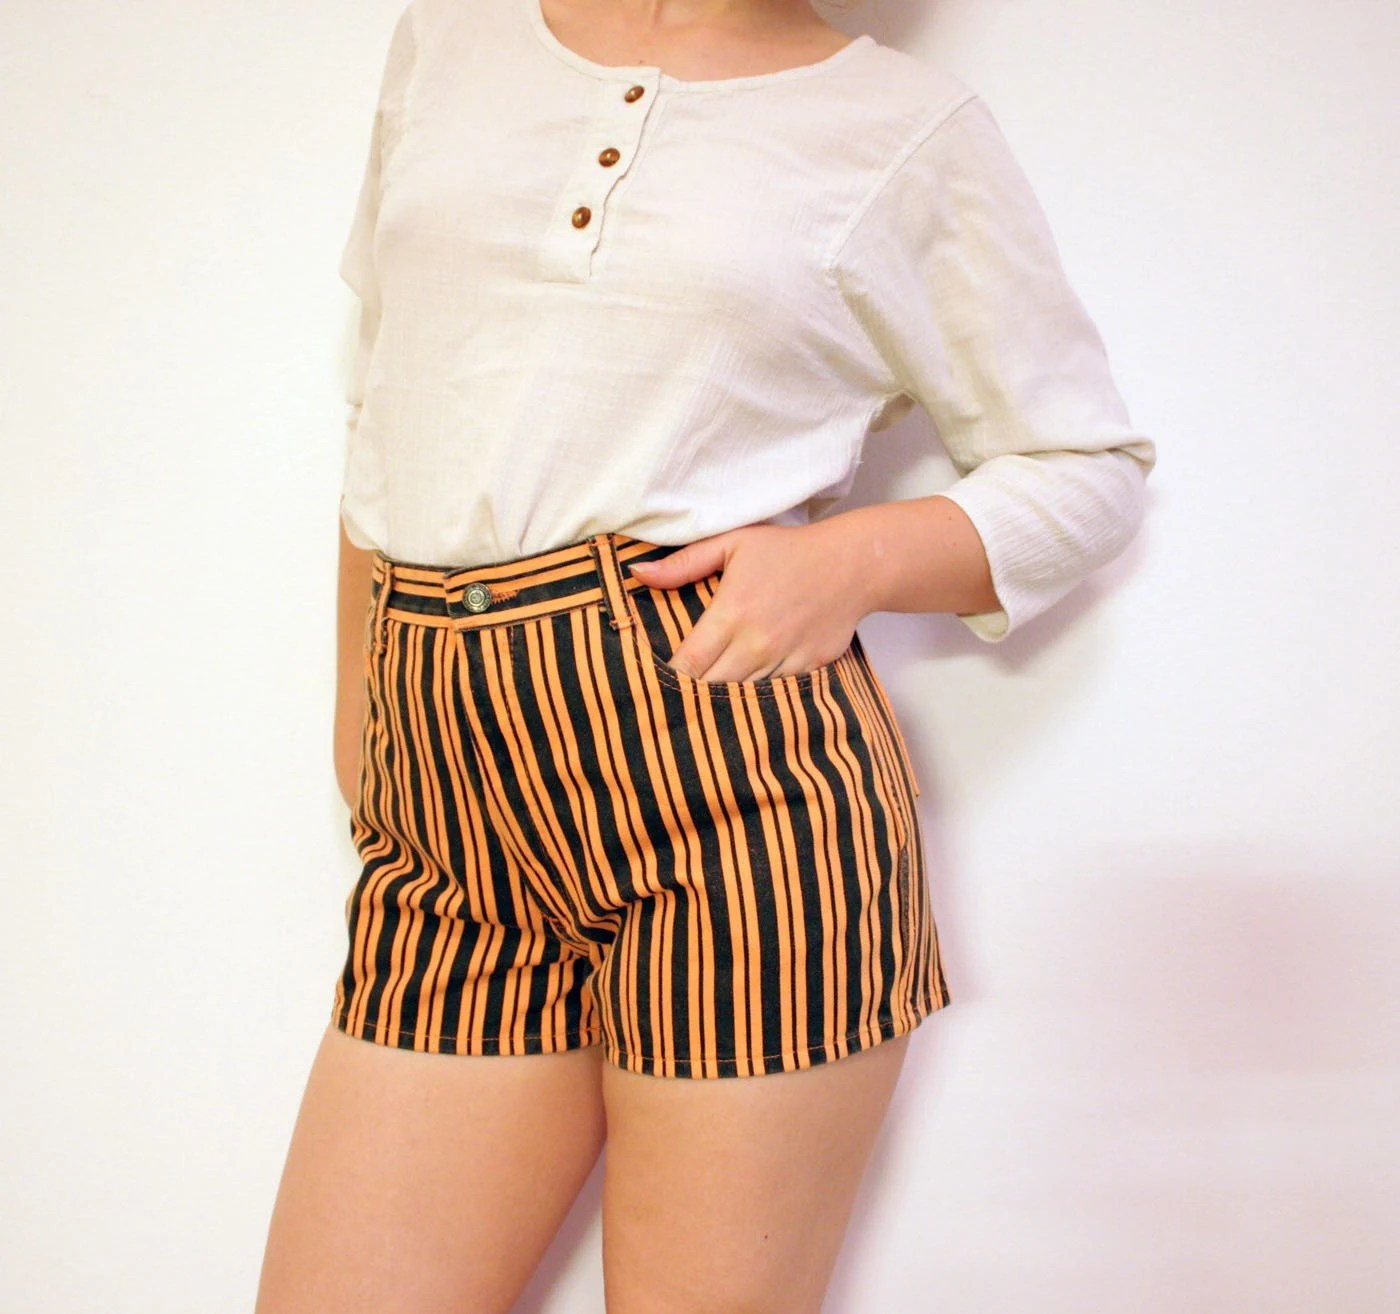 Vintage black and orange striped high waist jean Shorts (m)